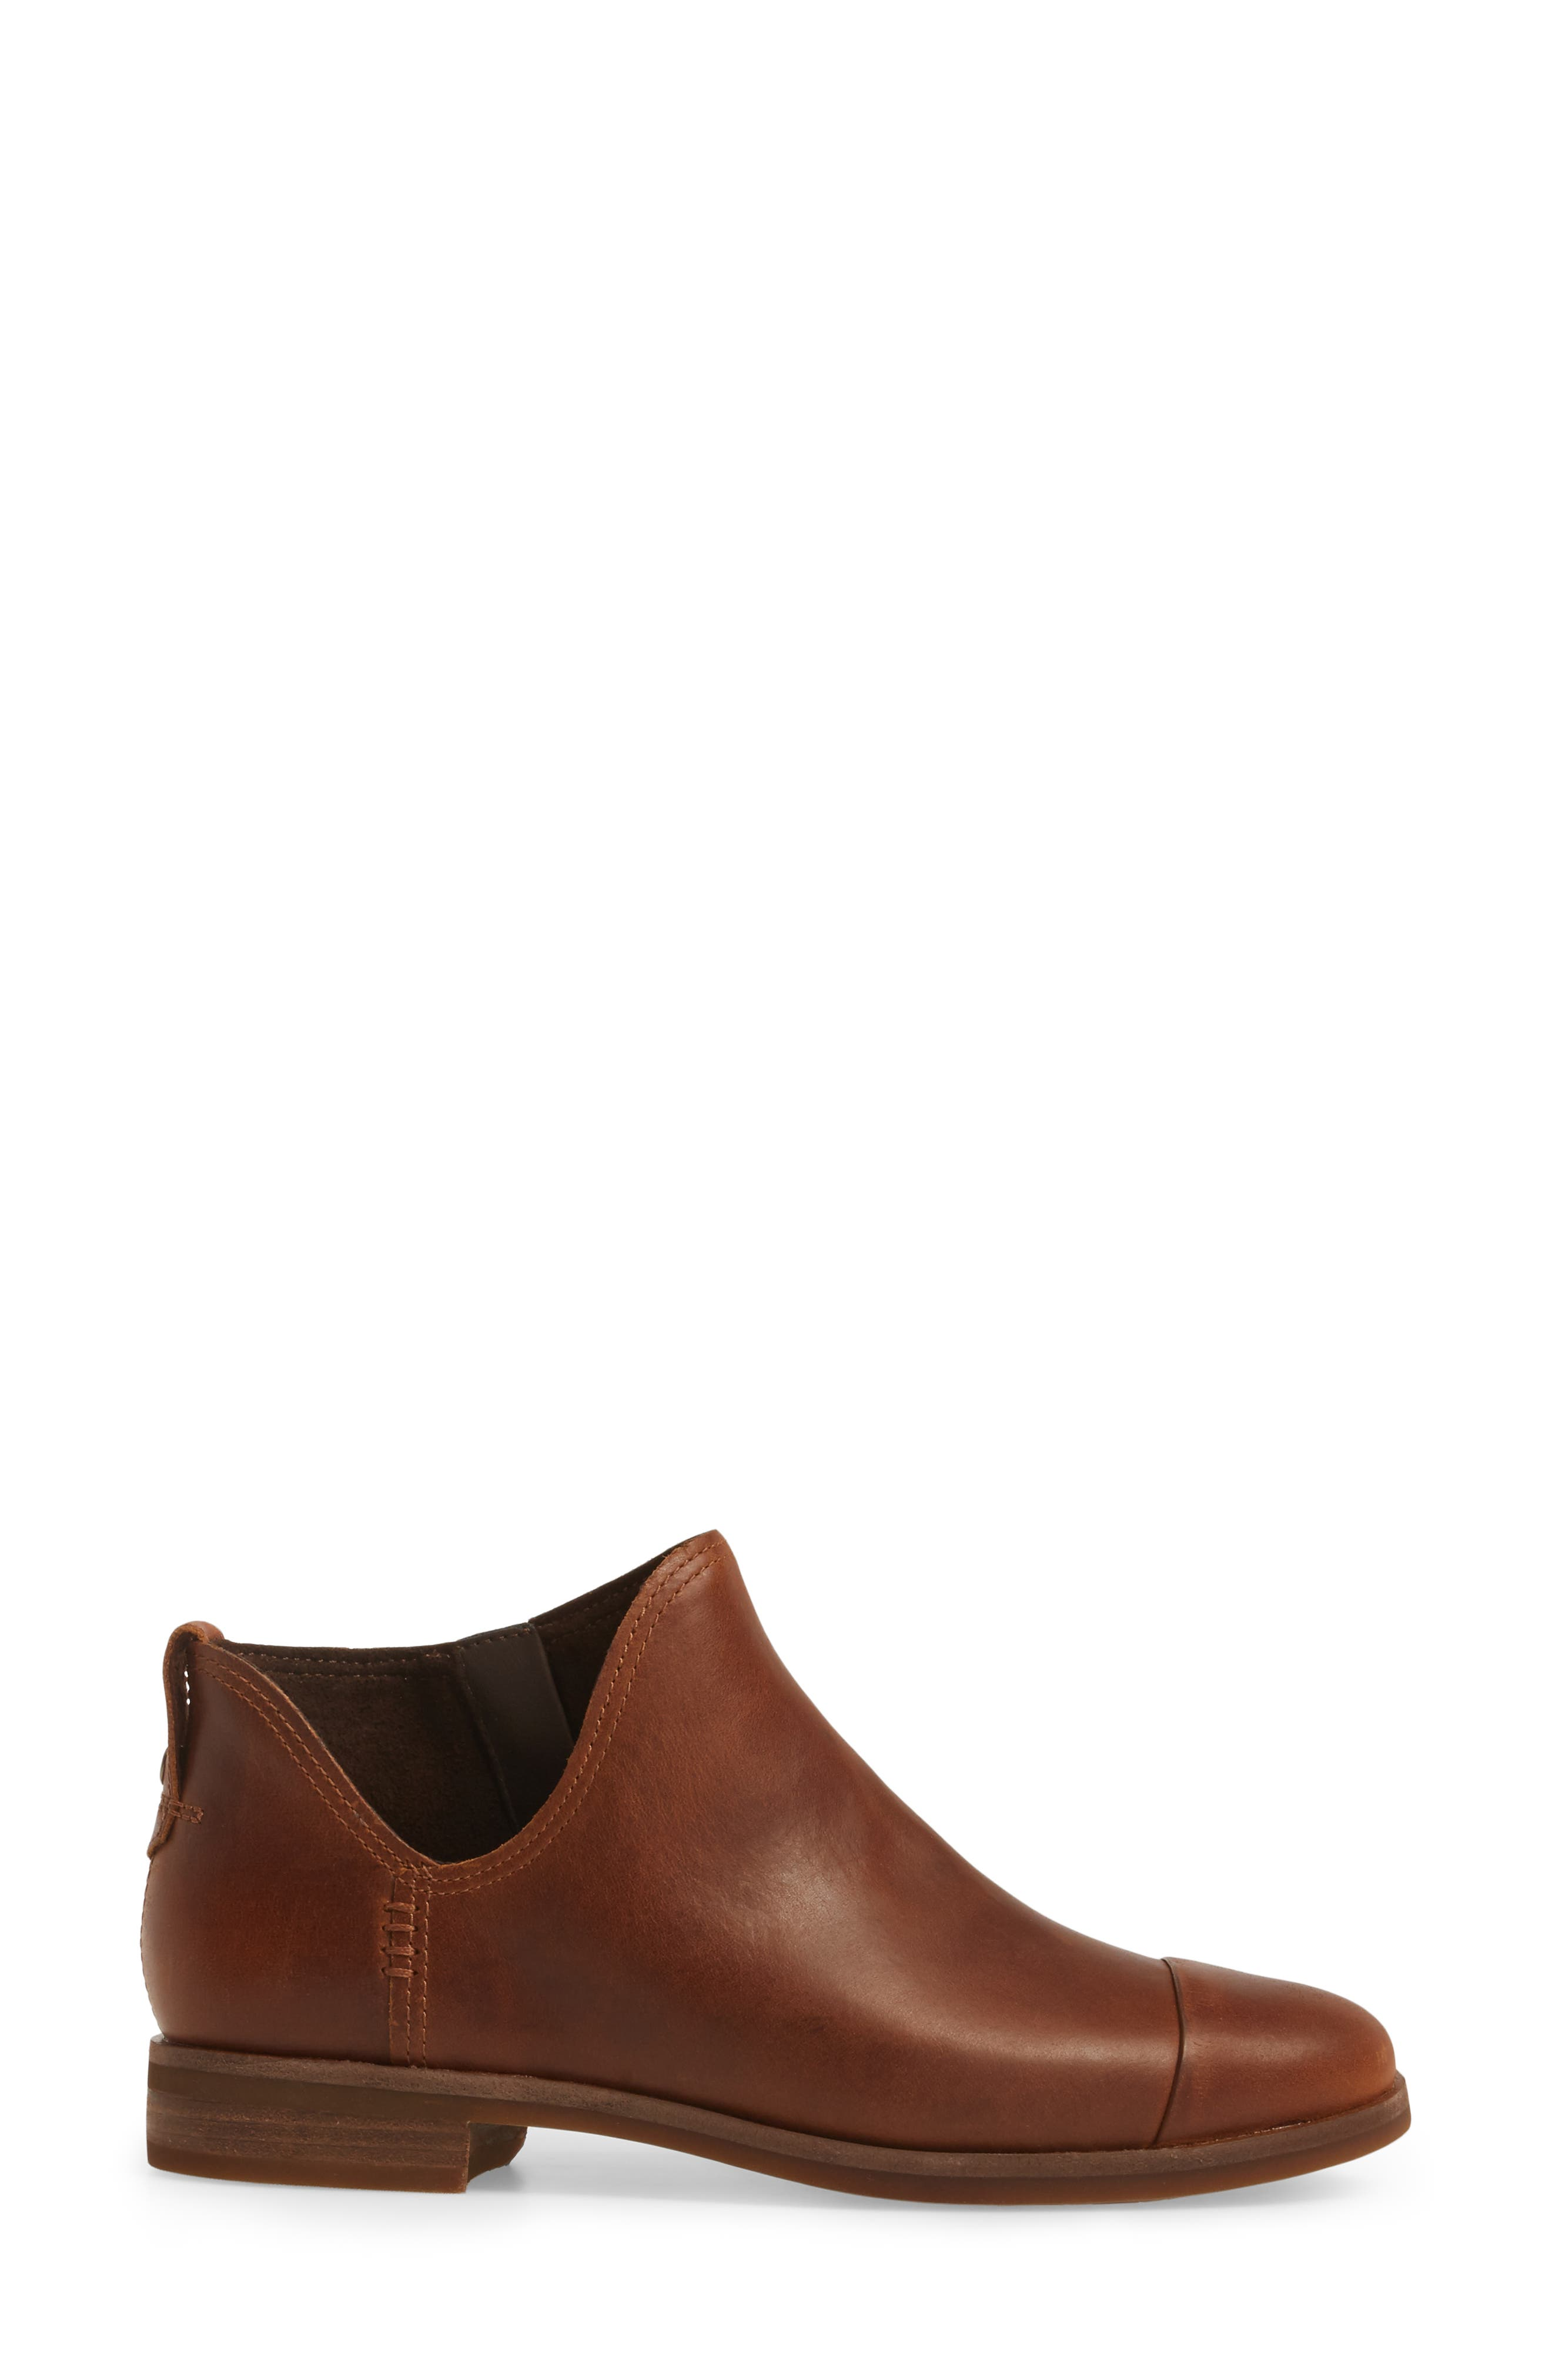 Alternate Image 2  - Timberland Somers Falls Short Ankle Bootie (Women)